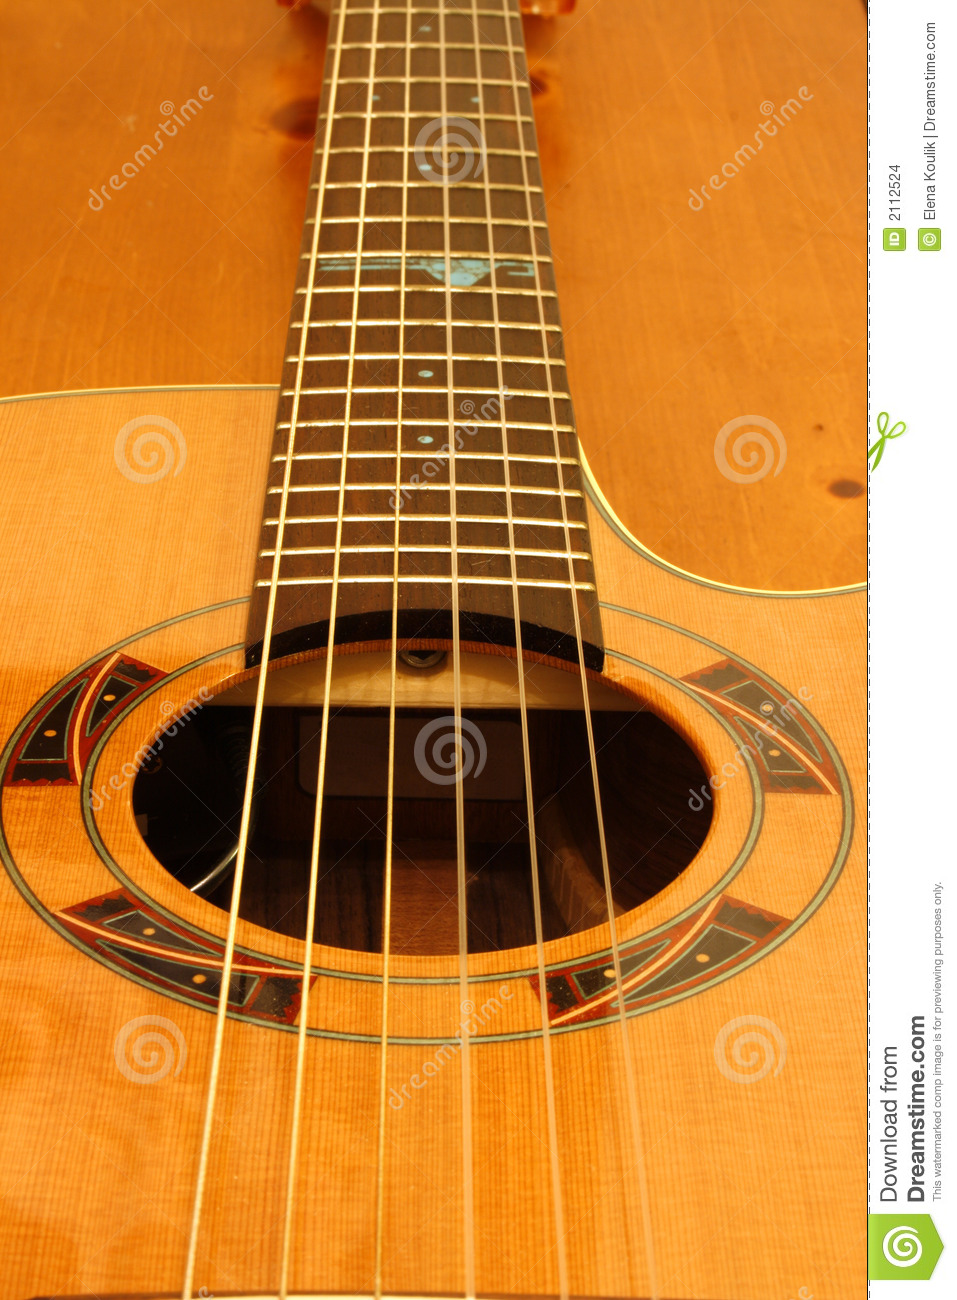 guitar strings stock photo image of harmony atmosphere 2112524. Black Bedroom Furniture Sets. Home Design Ideas